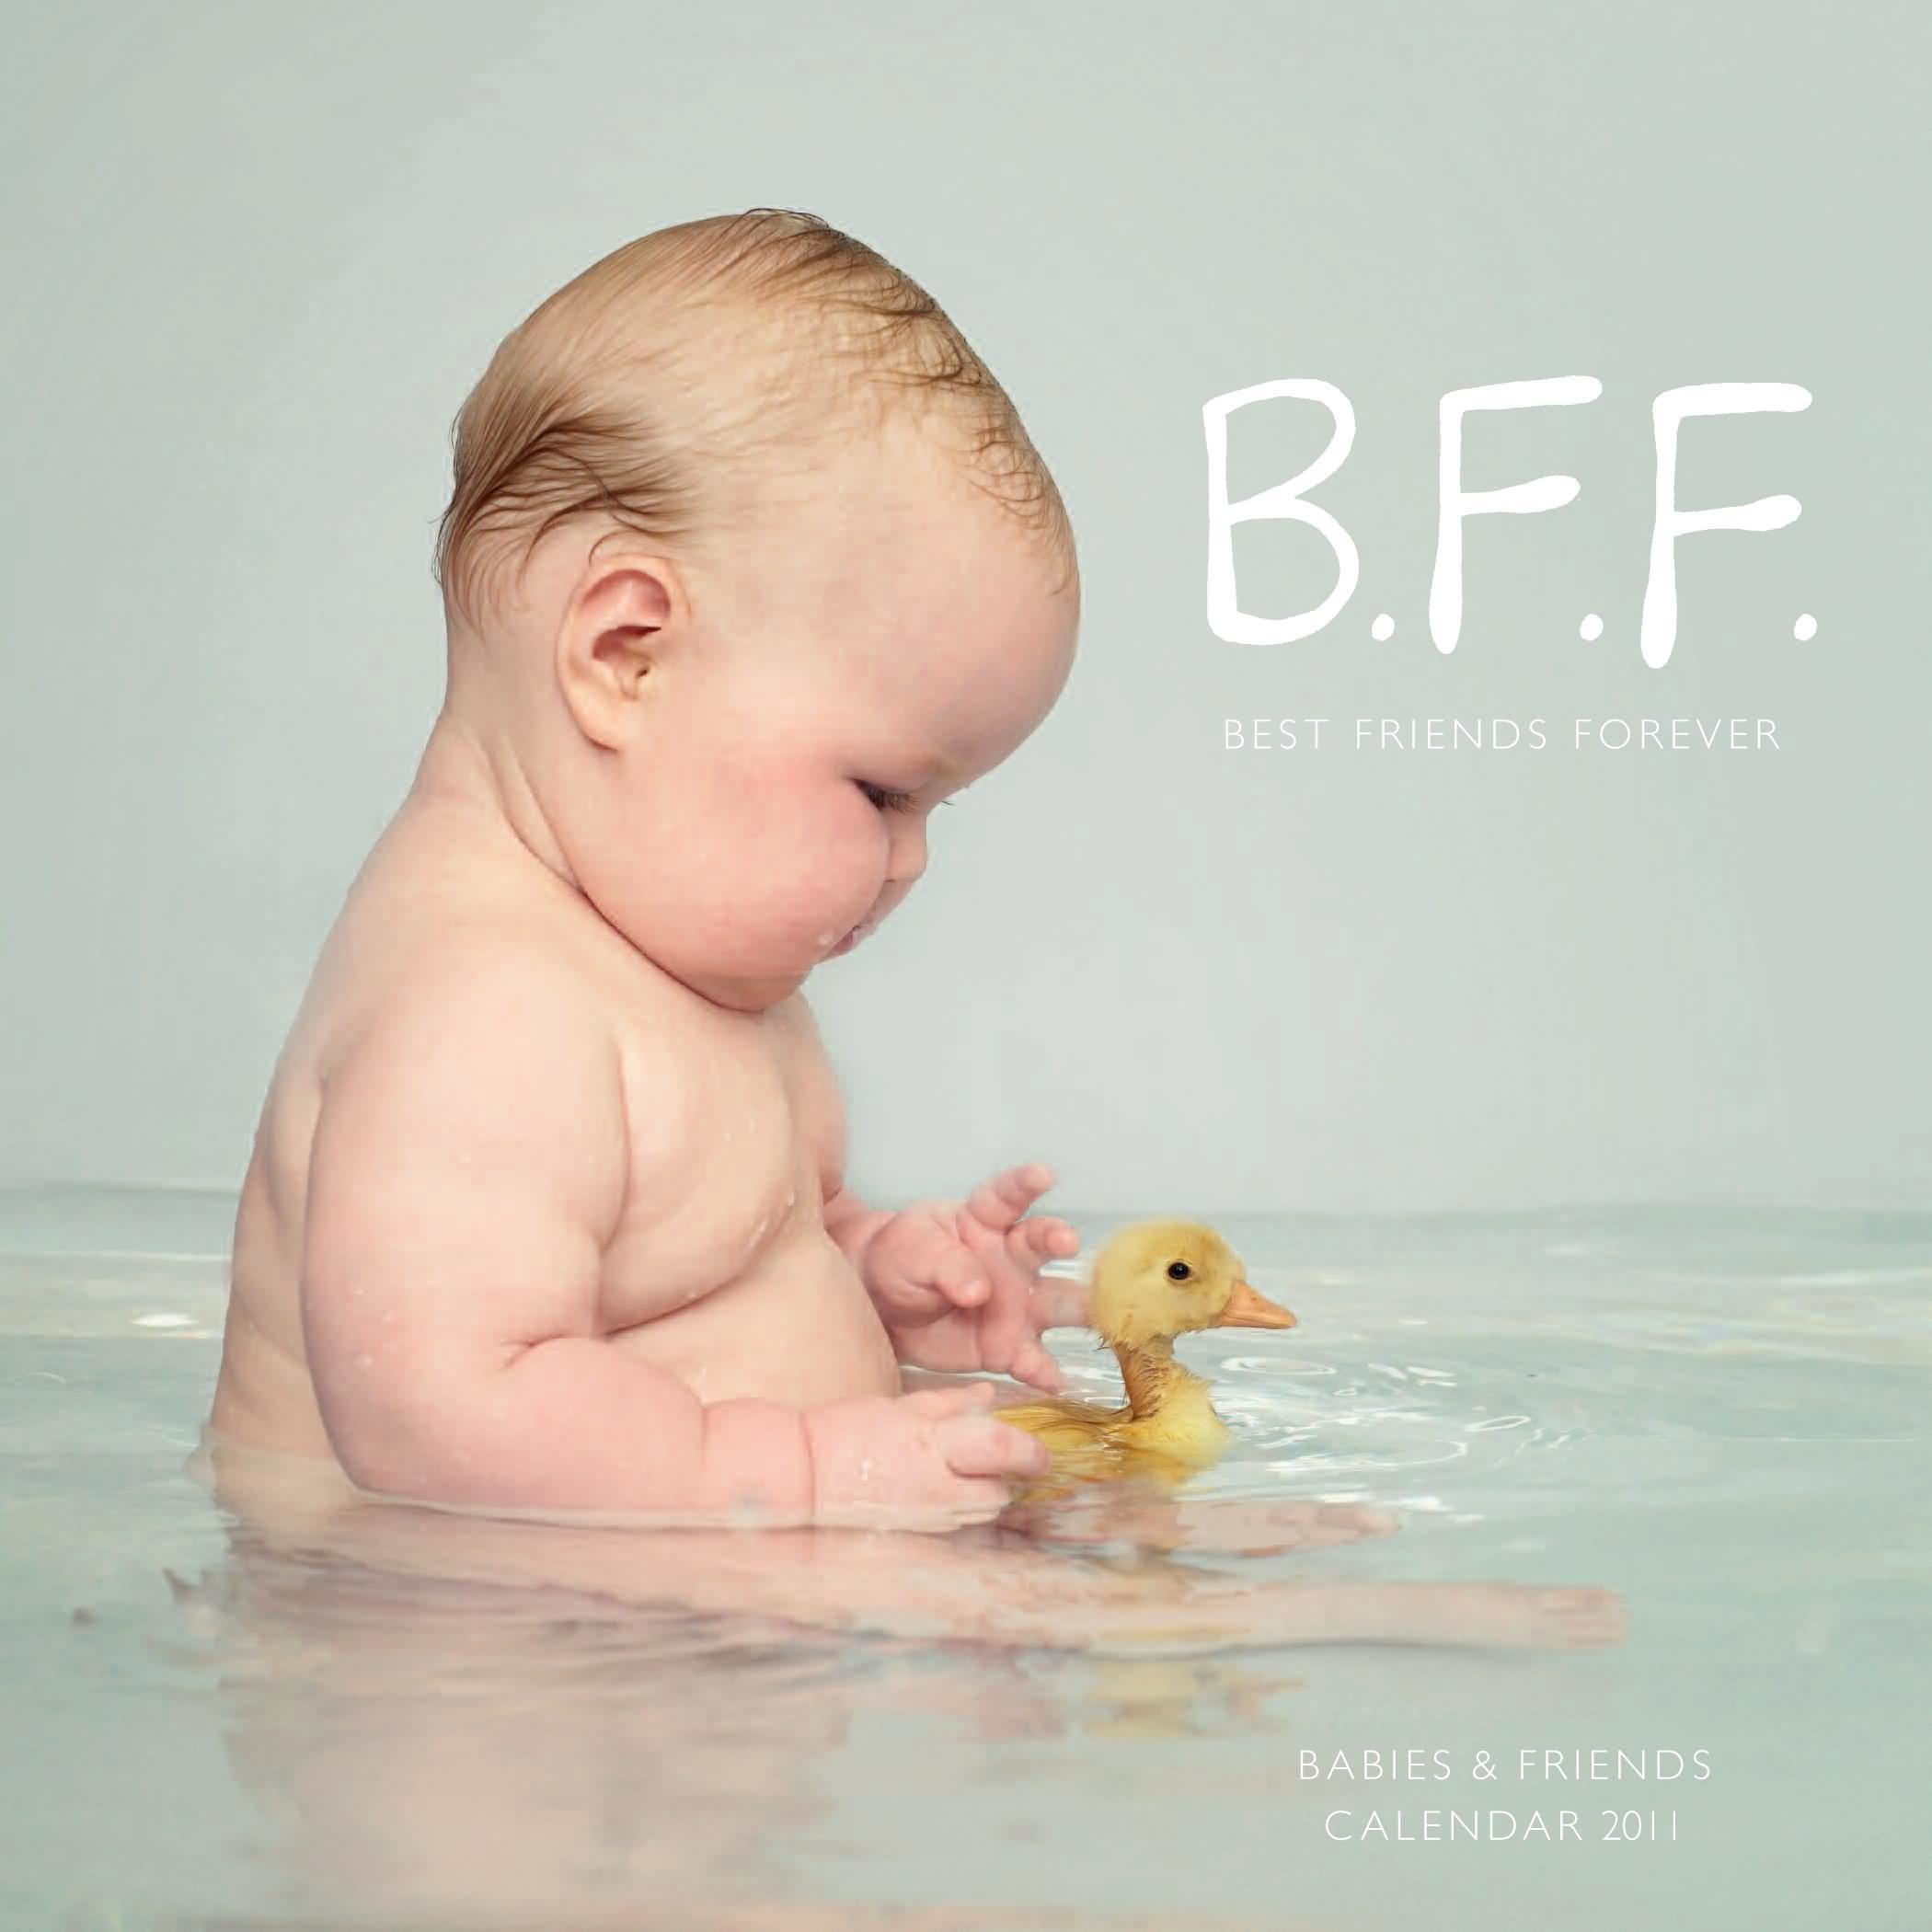 Bff Wallpapers (62+ Background Pictures